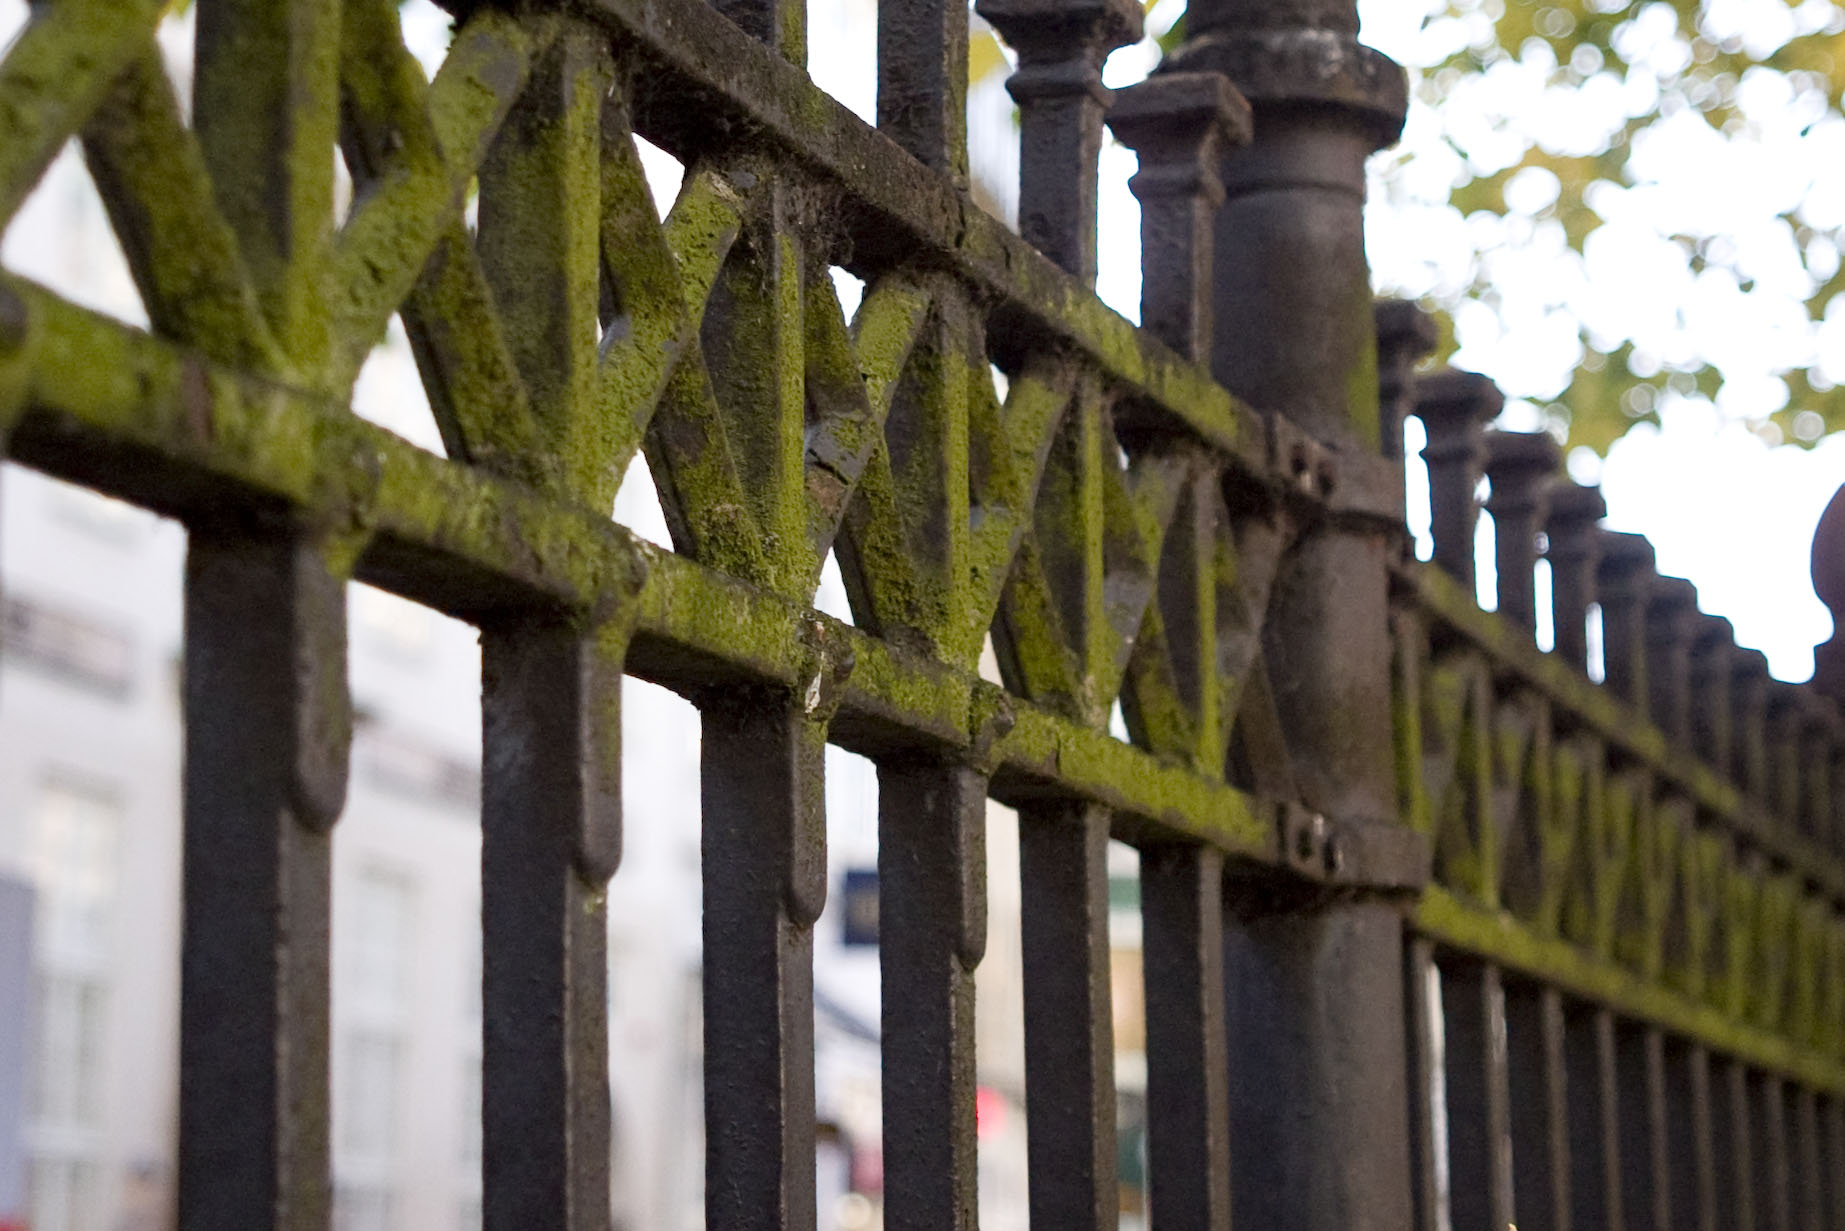 Fence rail at a Copenhagen churchyard. October 2008.